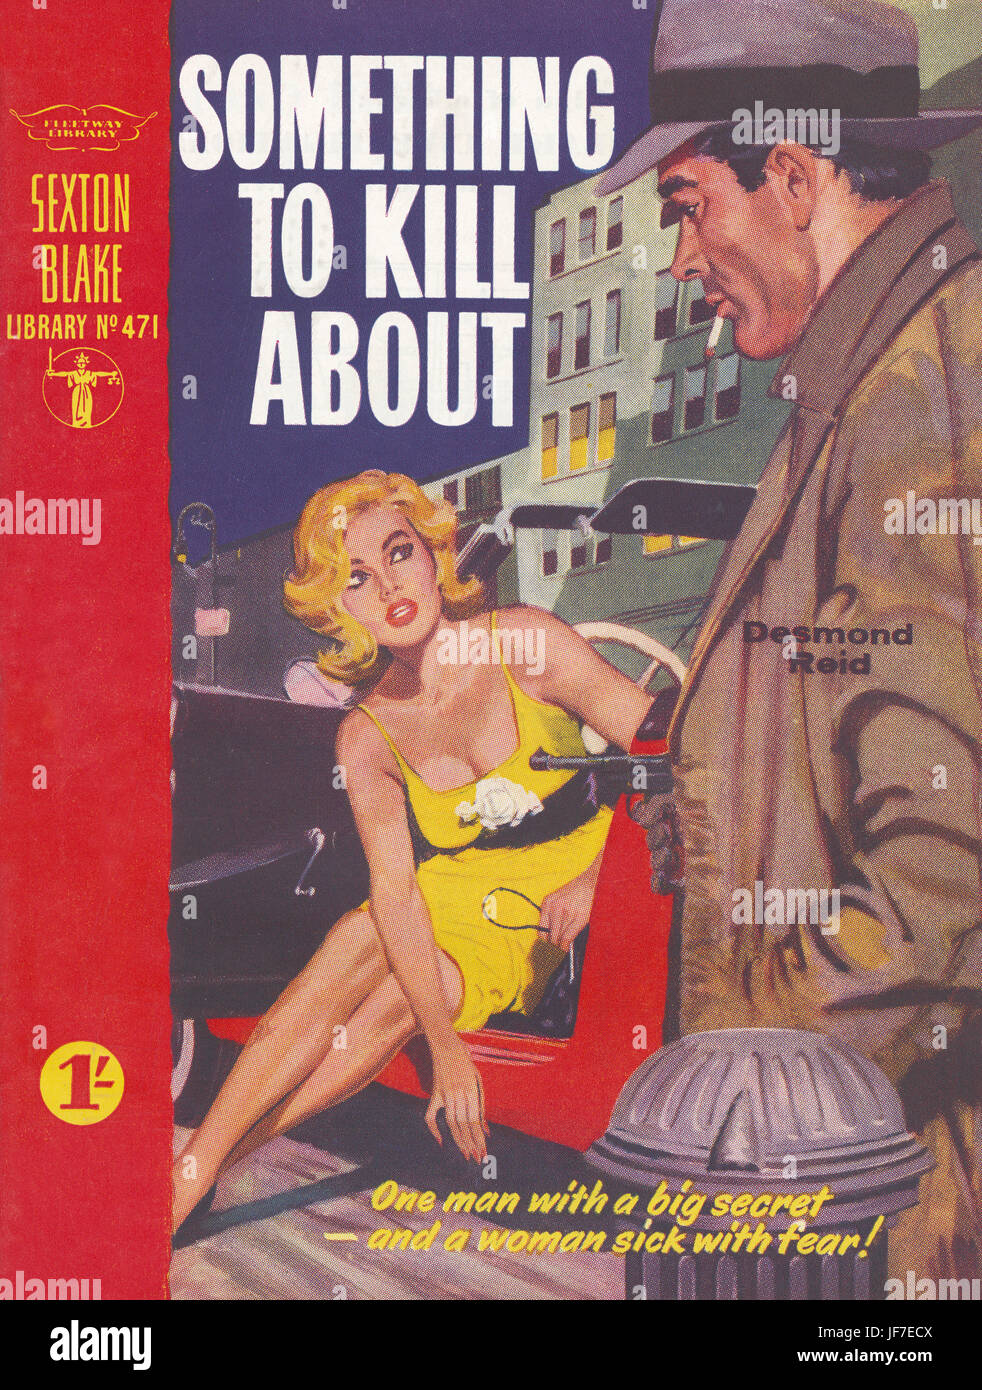 'Something to Kill About,' by Desmond Reid - book cover illustration. Caption reads, 'One man with a - Stock Image